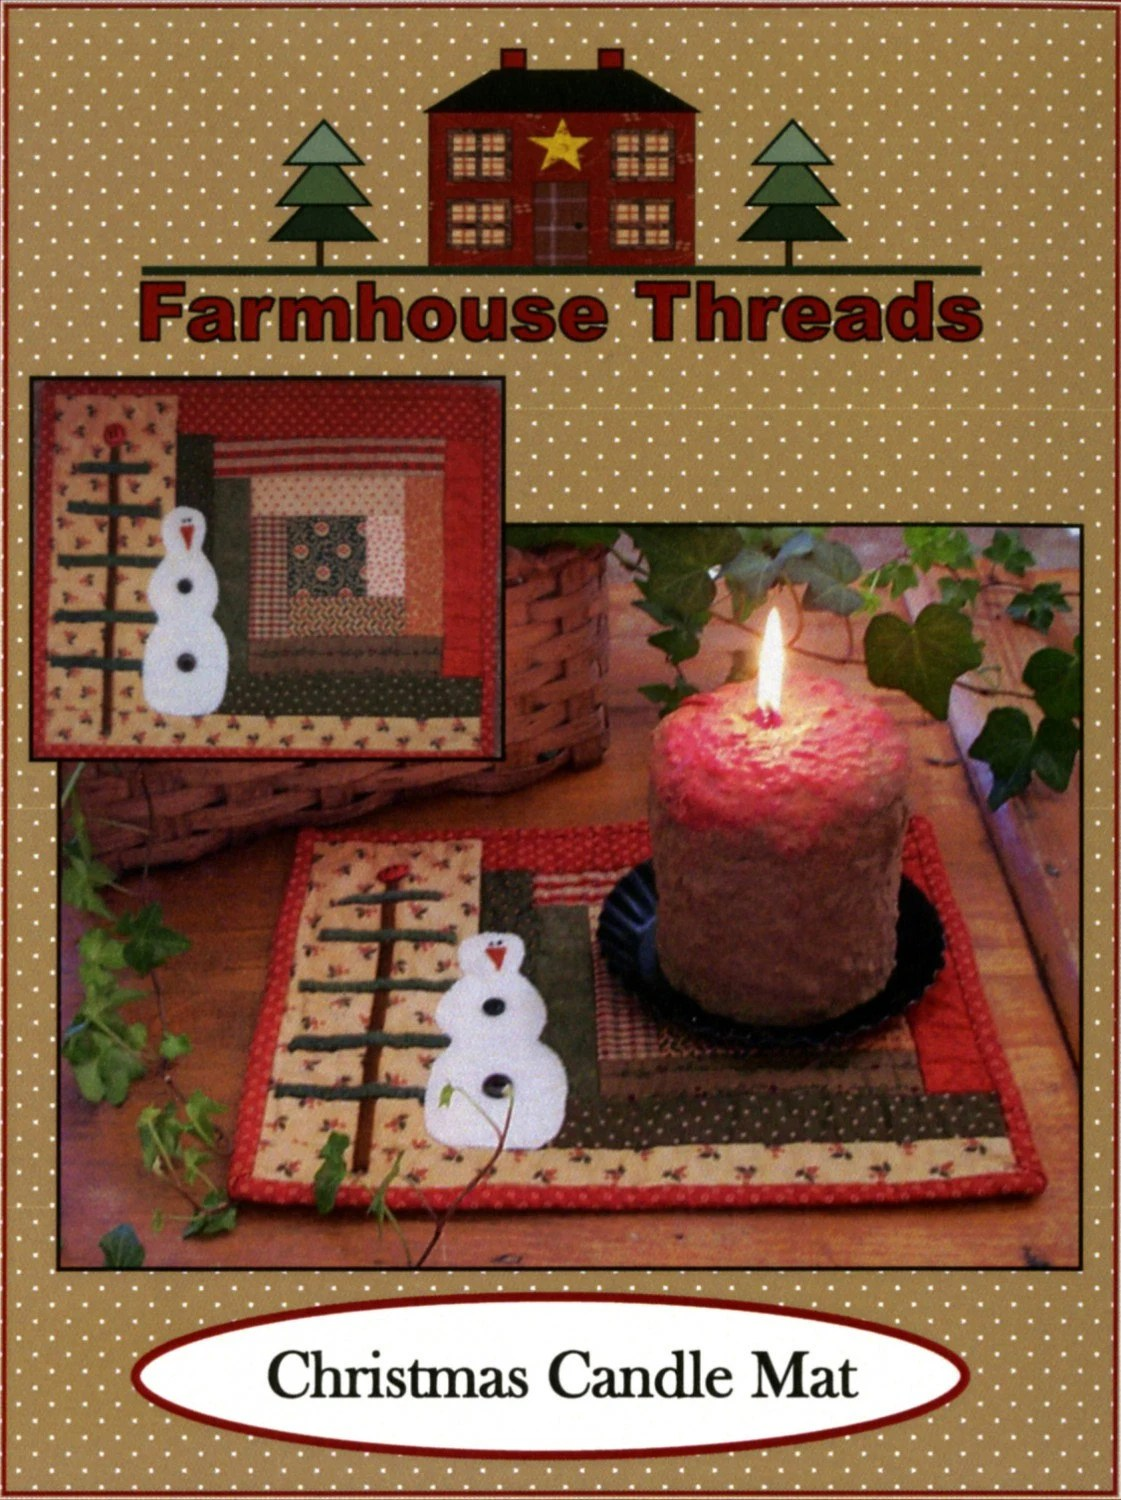 Farmhouse Threads Christmas Candle Mat From Farmhouse Threads Christmas Decor